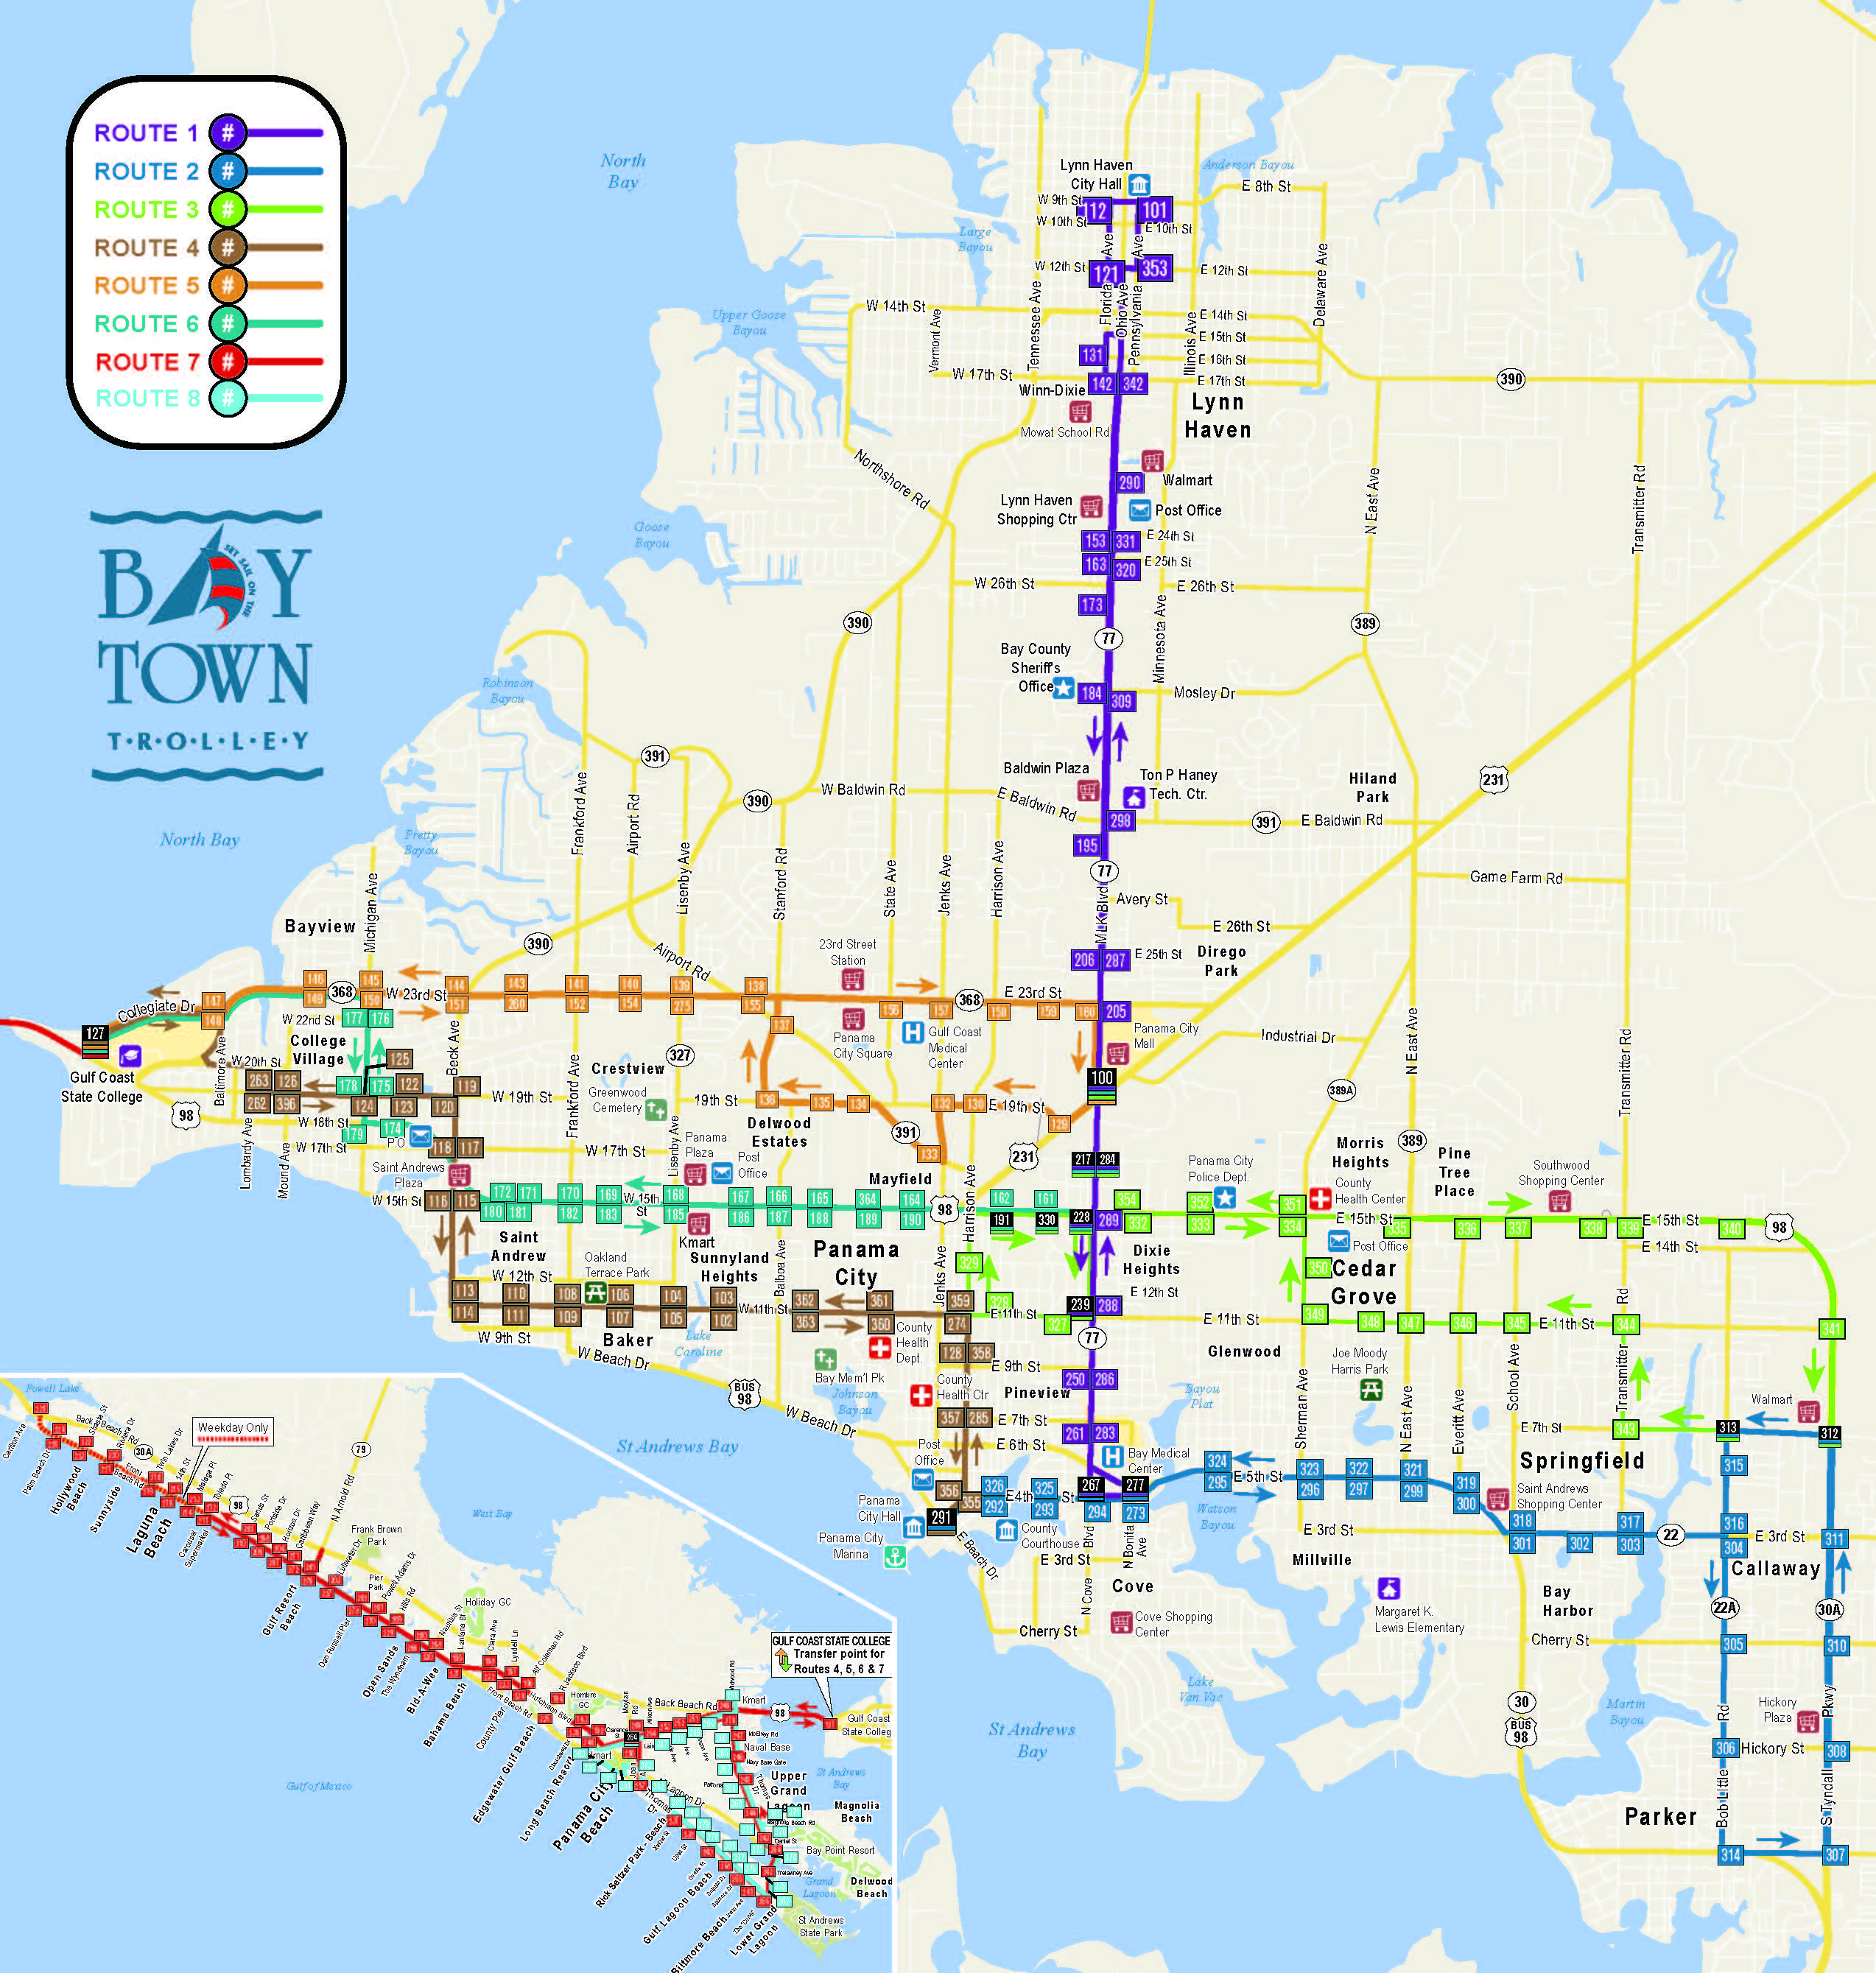 2019 Bay Town Trolley Route Map